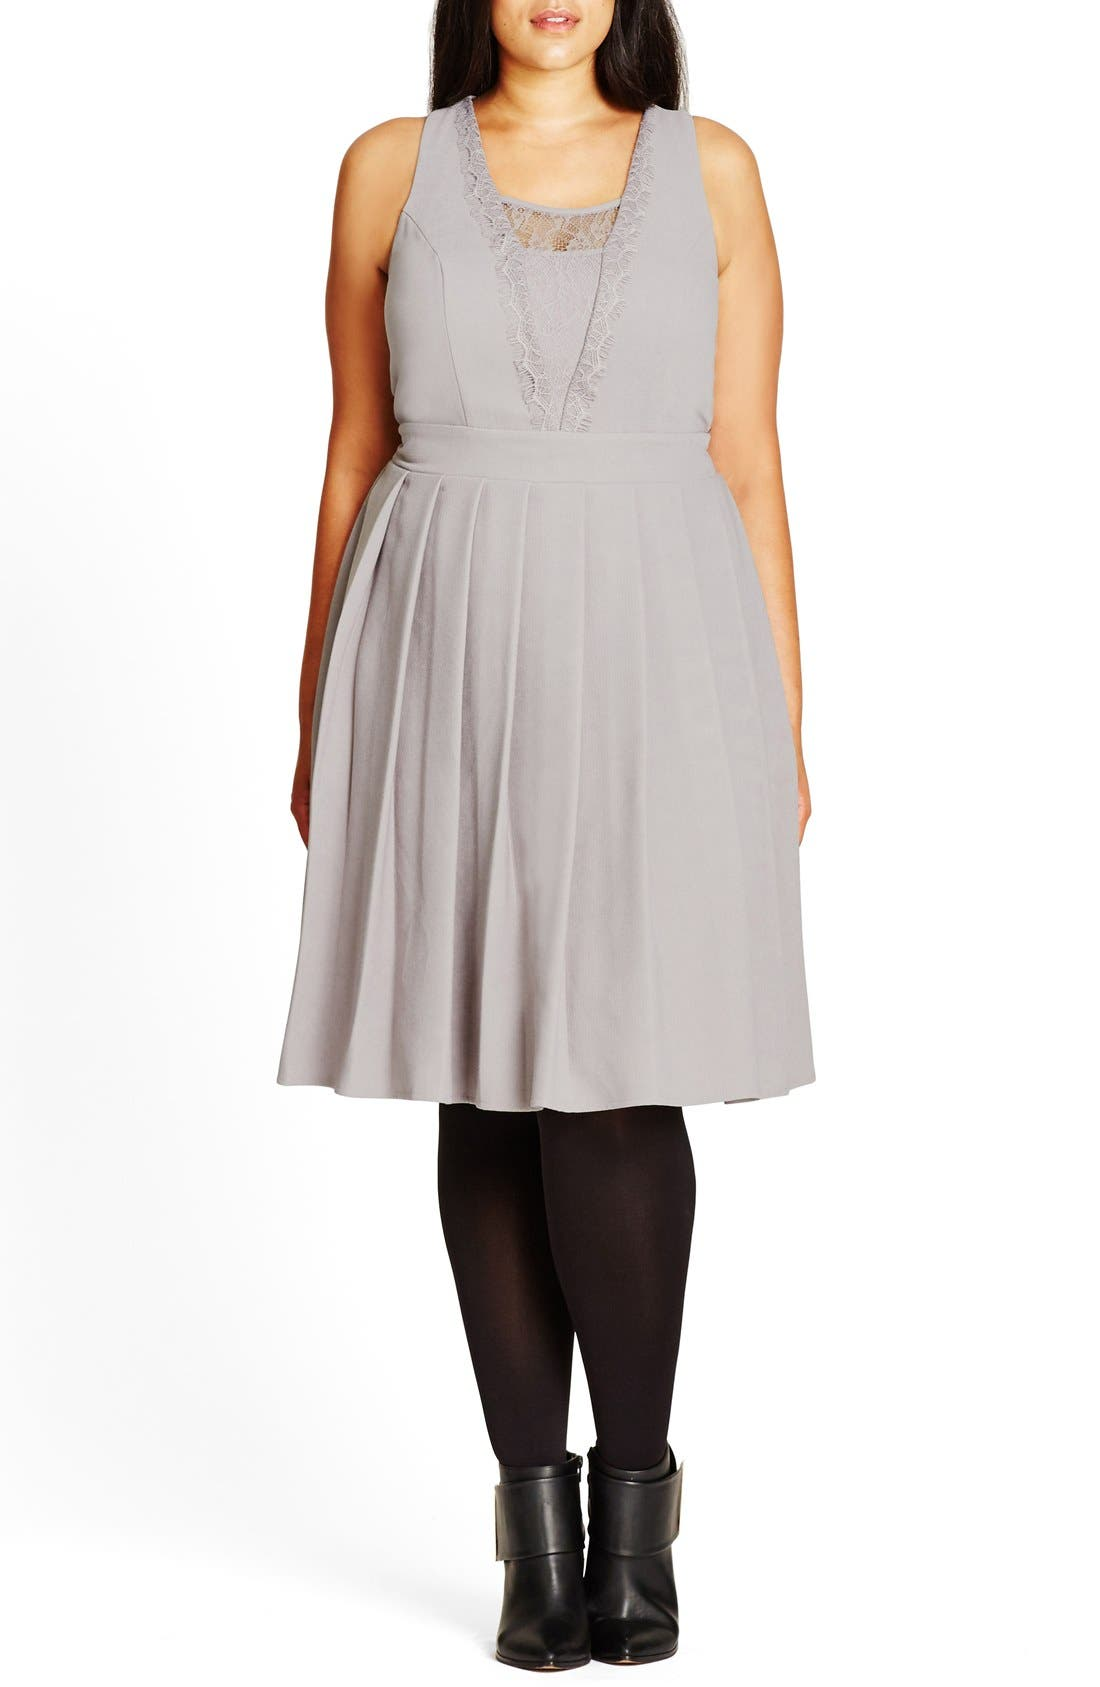 Alternate Image 1 Selected - City Chic 'Eyelash Trim' Lace Inset Pleat Fit & Flare Dress (Plus Size)